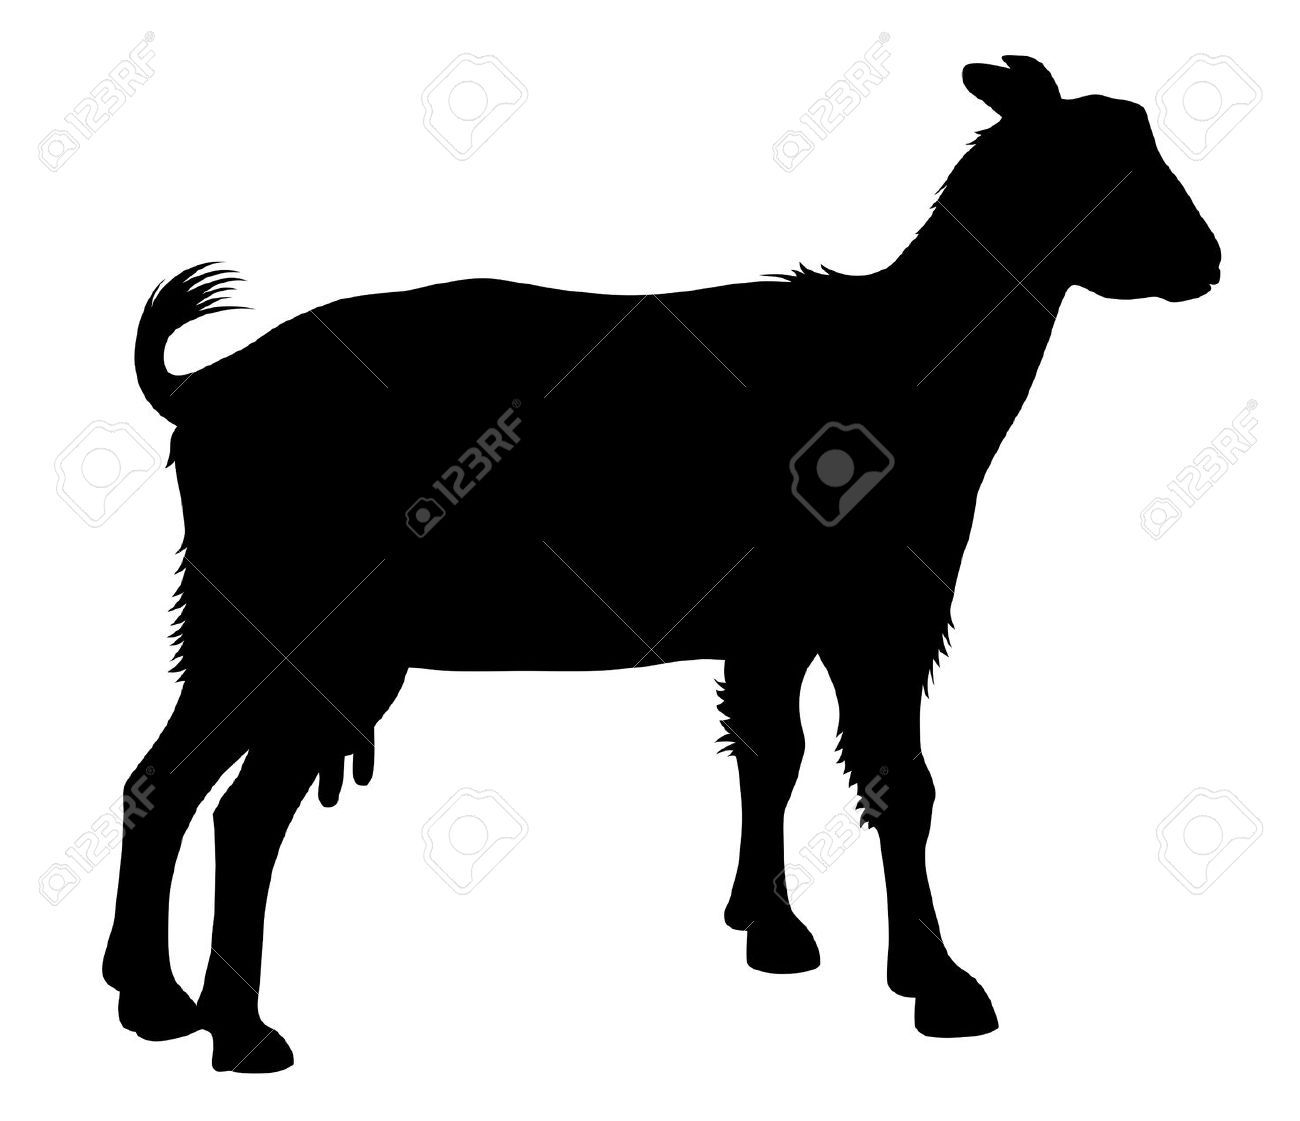 1300x1121 Detailed Vector Illustration Of Goat Silhouette Stock Vector